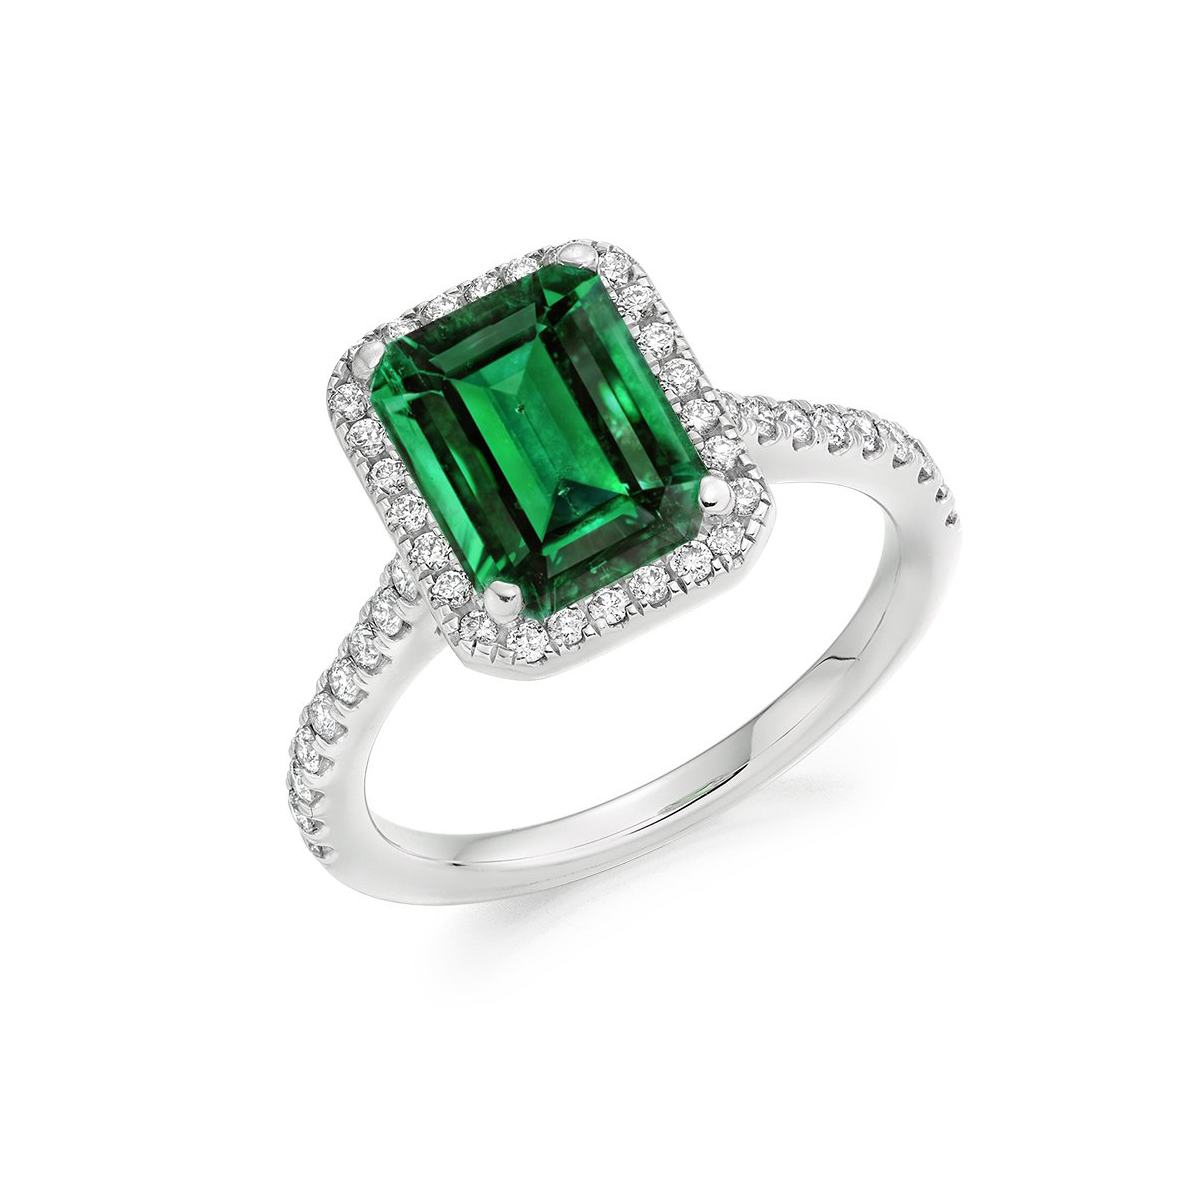 Raphael Collection Emerald Engagement Ring 1 Cole The